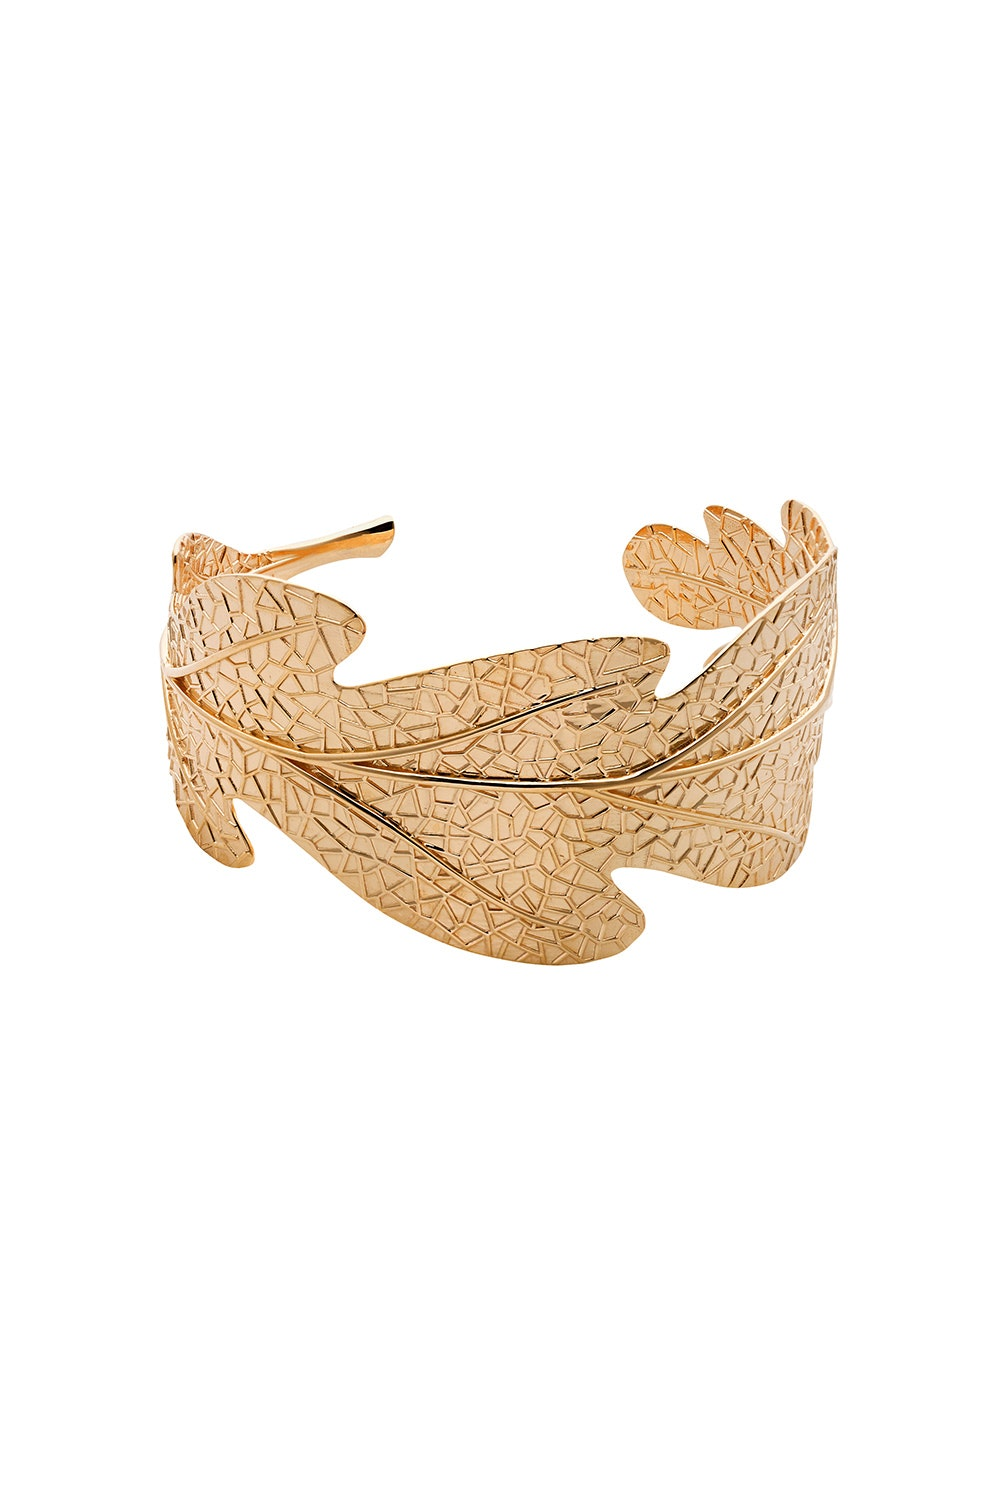 oak-leaf-cuff-gold-plated-kw349hgp-gold-plated-front-0288459001551228603_1551228512